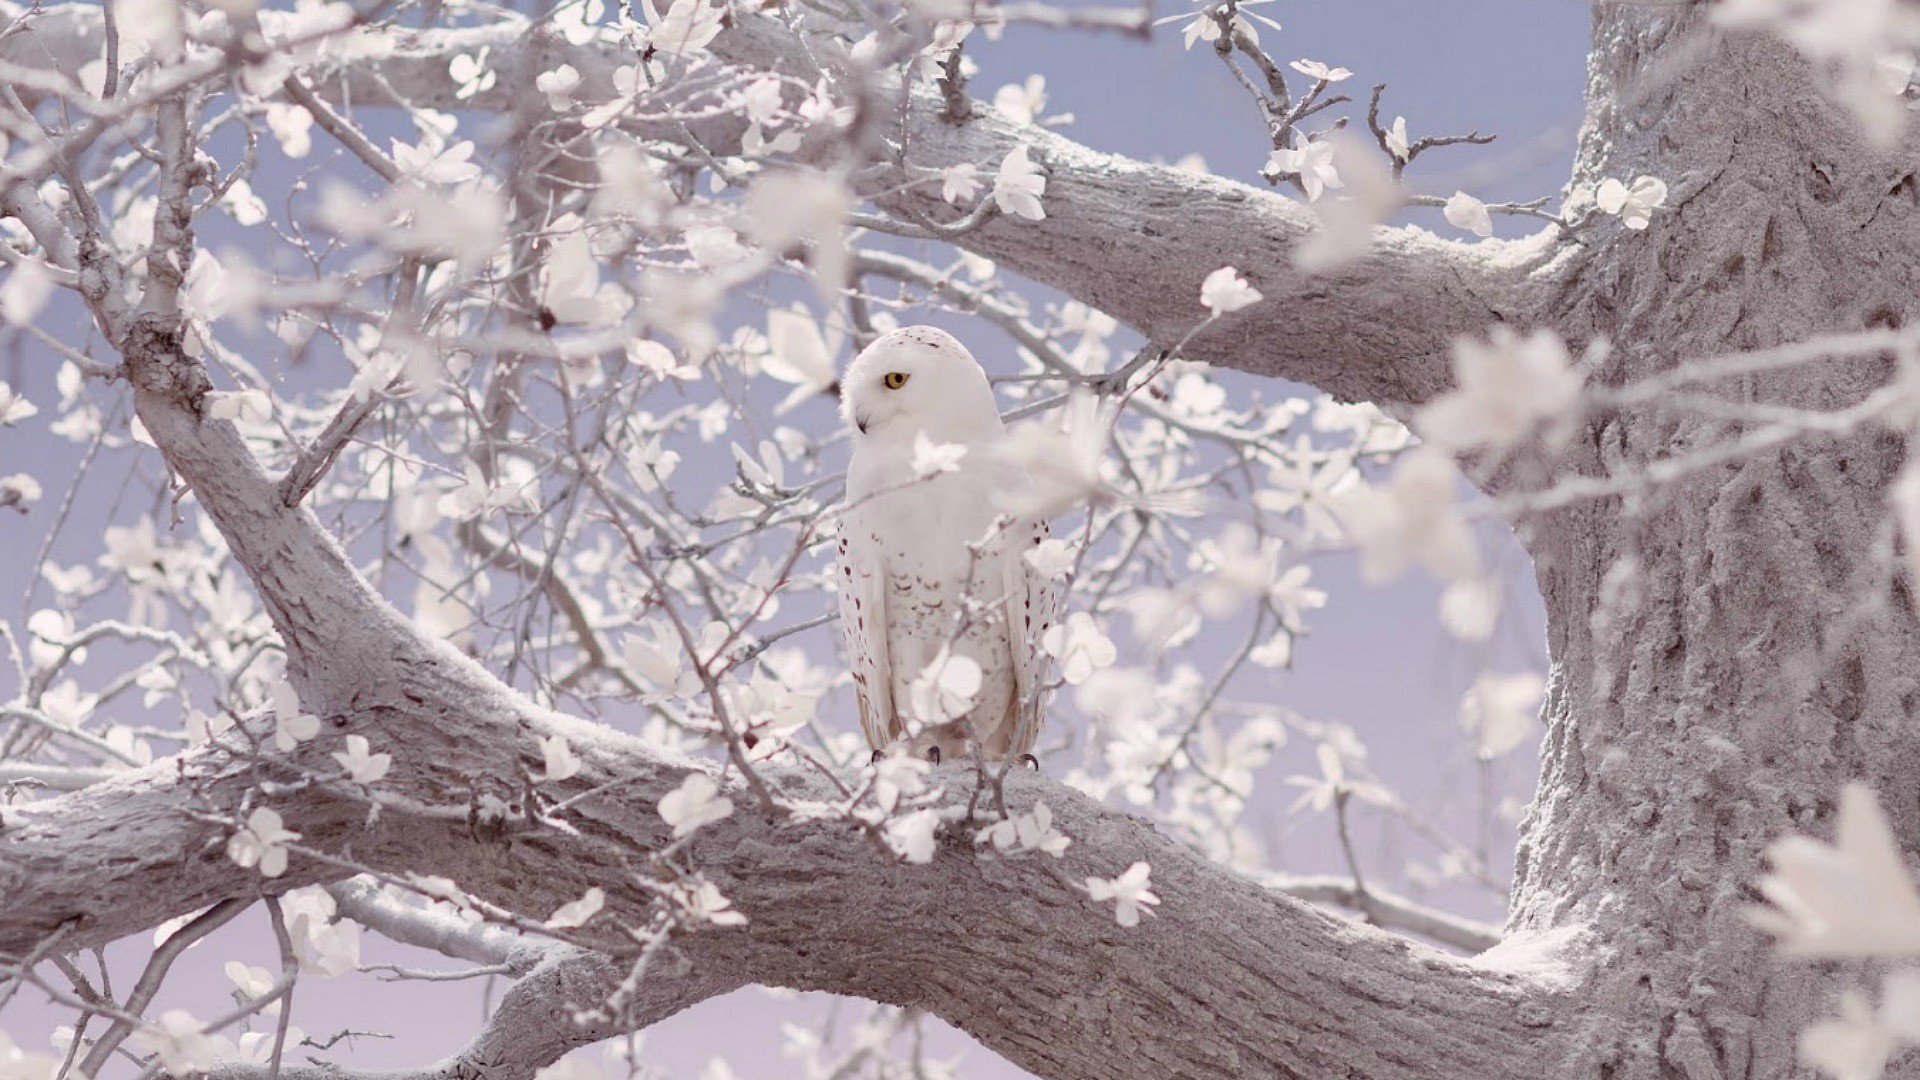 White Owl wallpapers. White Owl High quality wallpapers